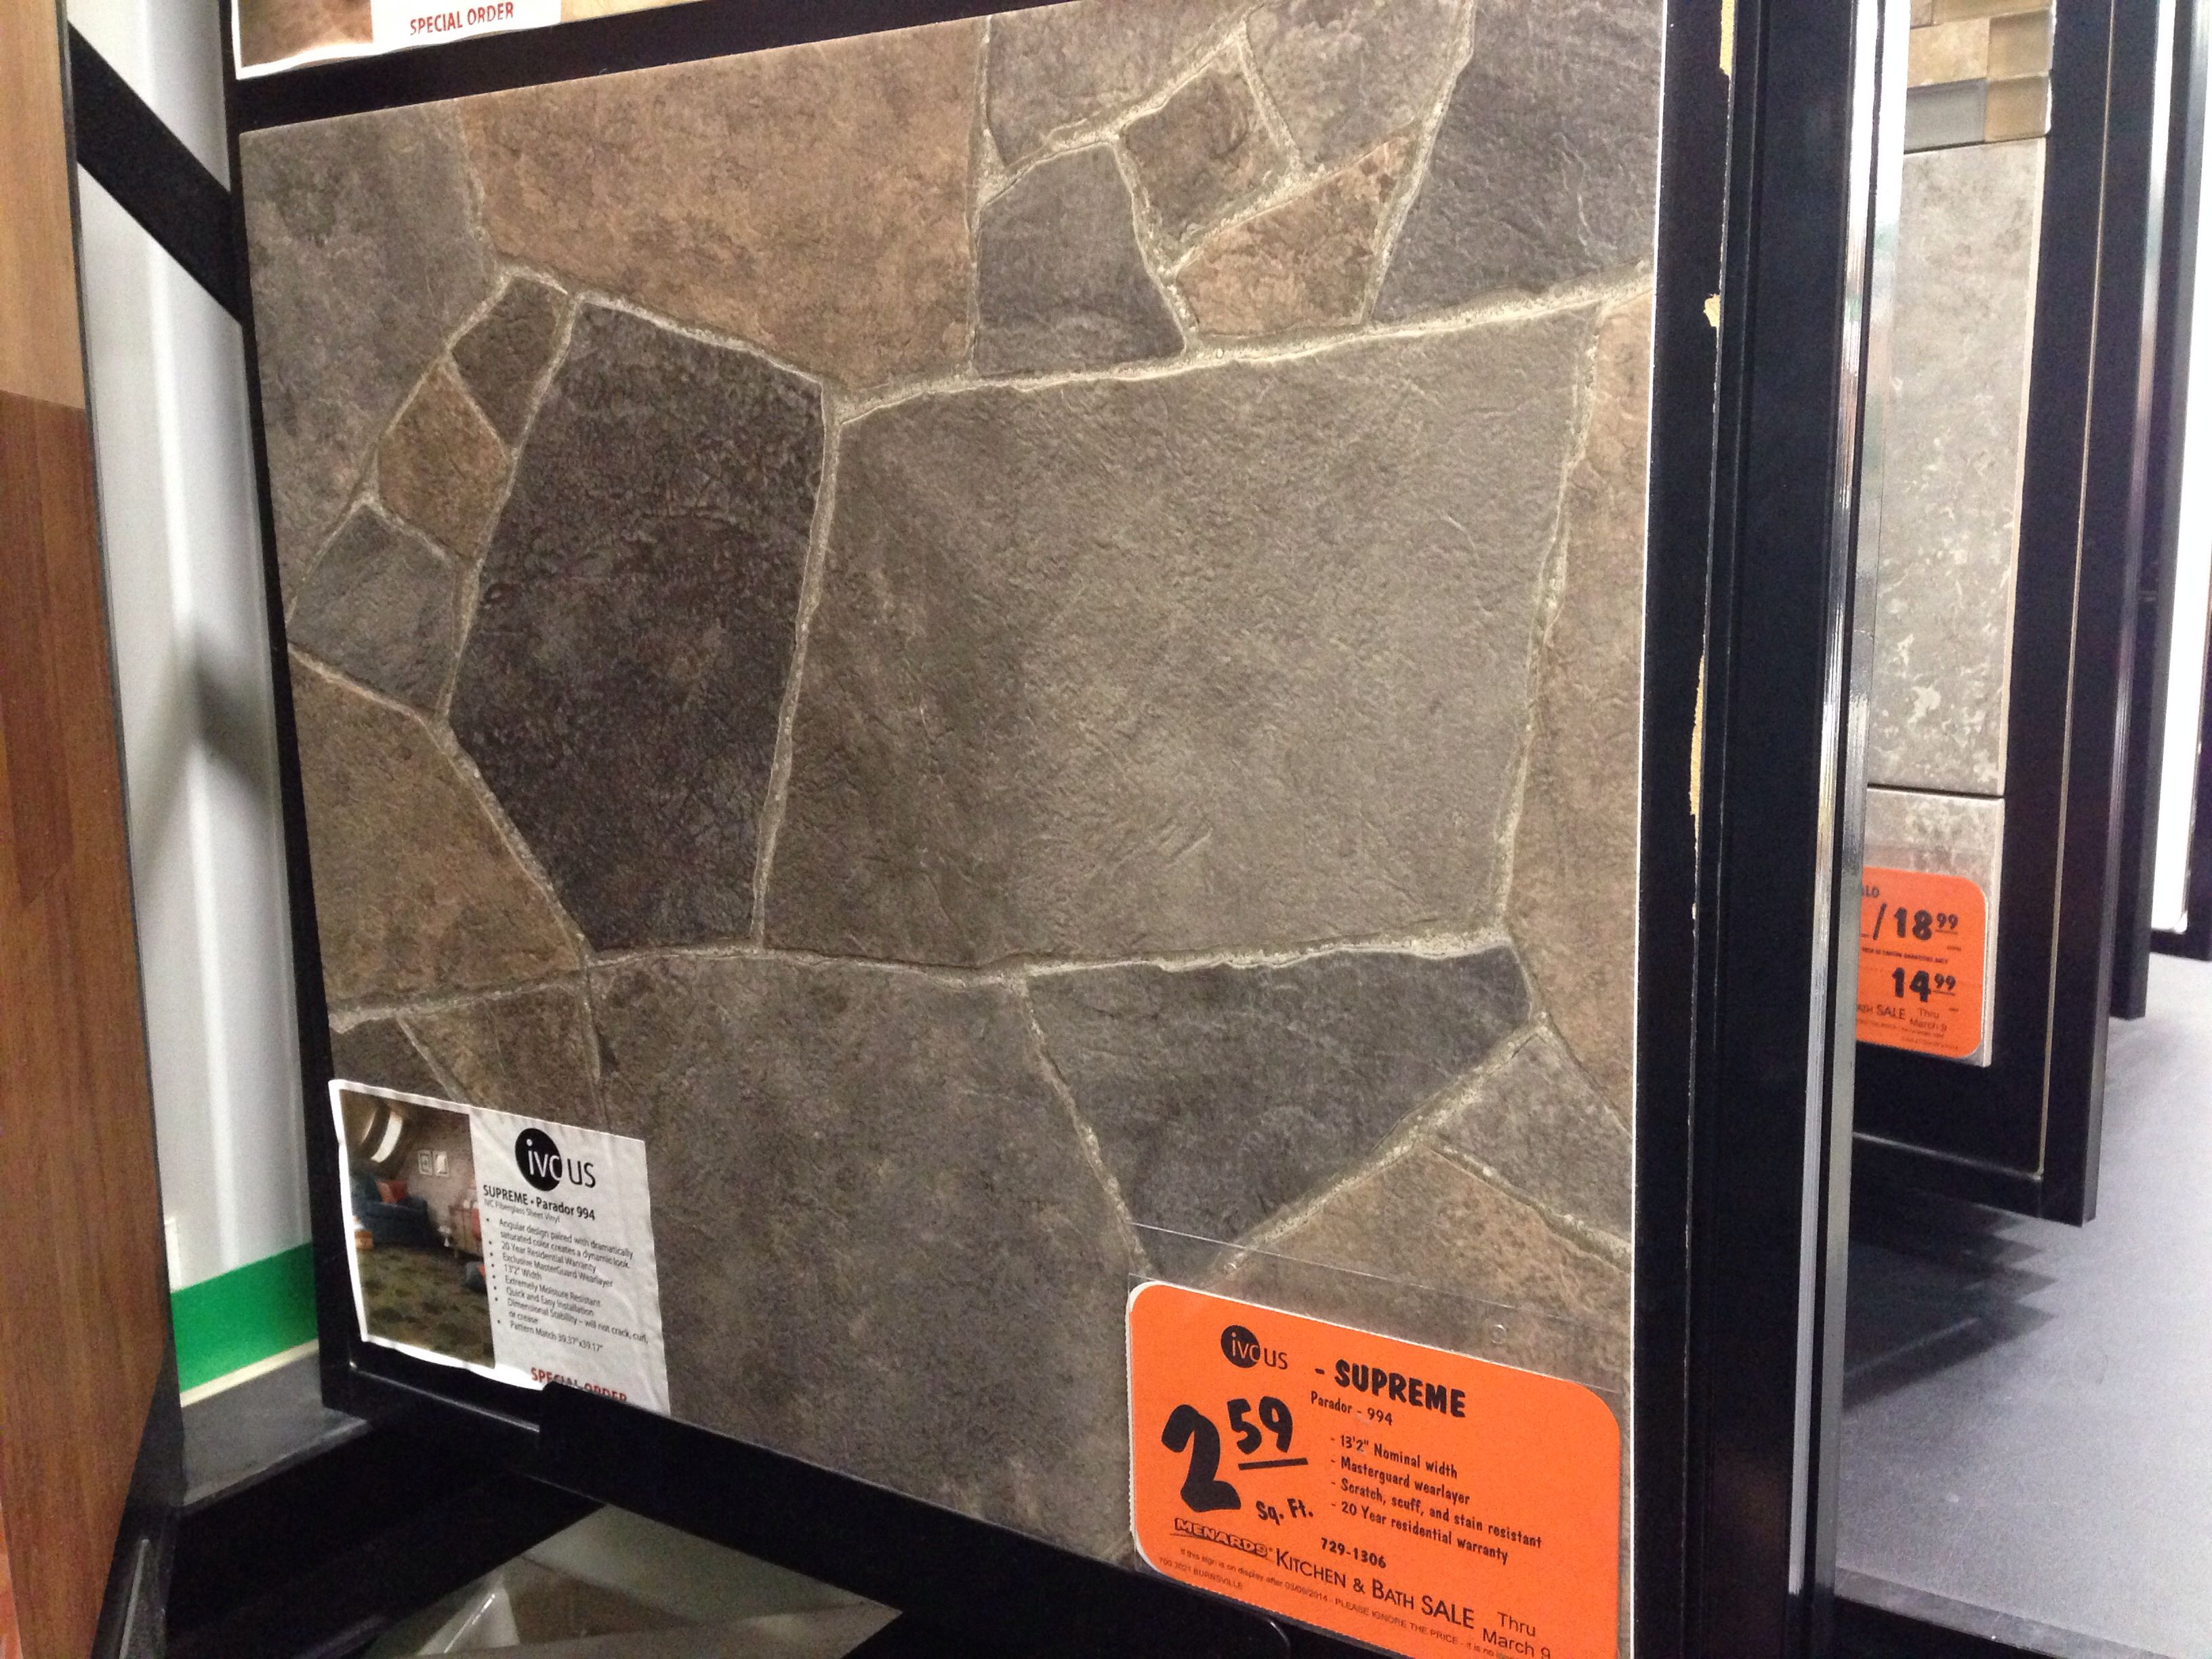 Menards vinyl flooring Vinyl flooring, Flooring, Home decor